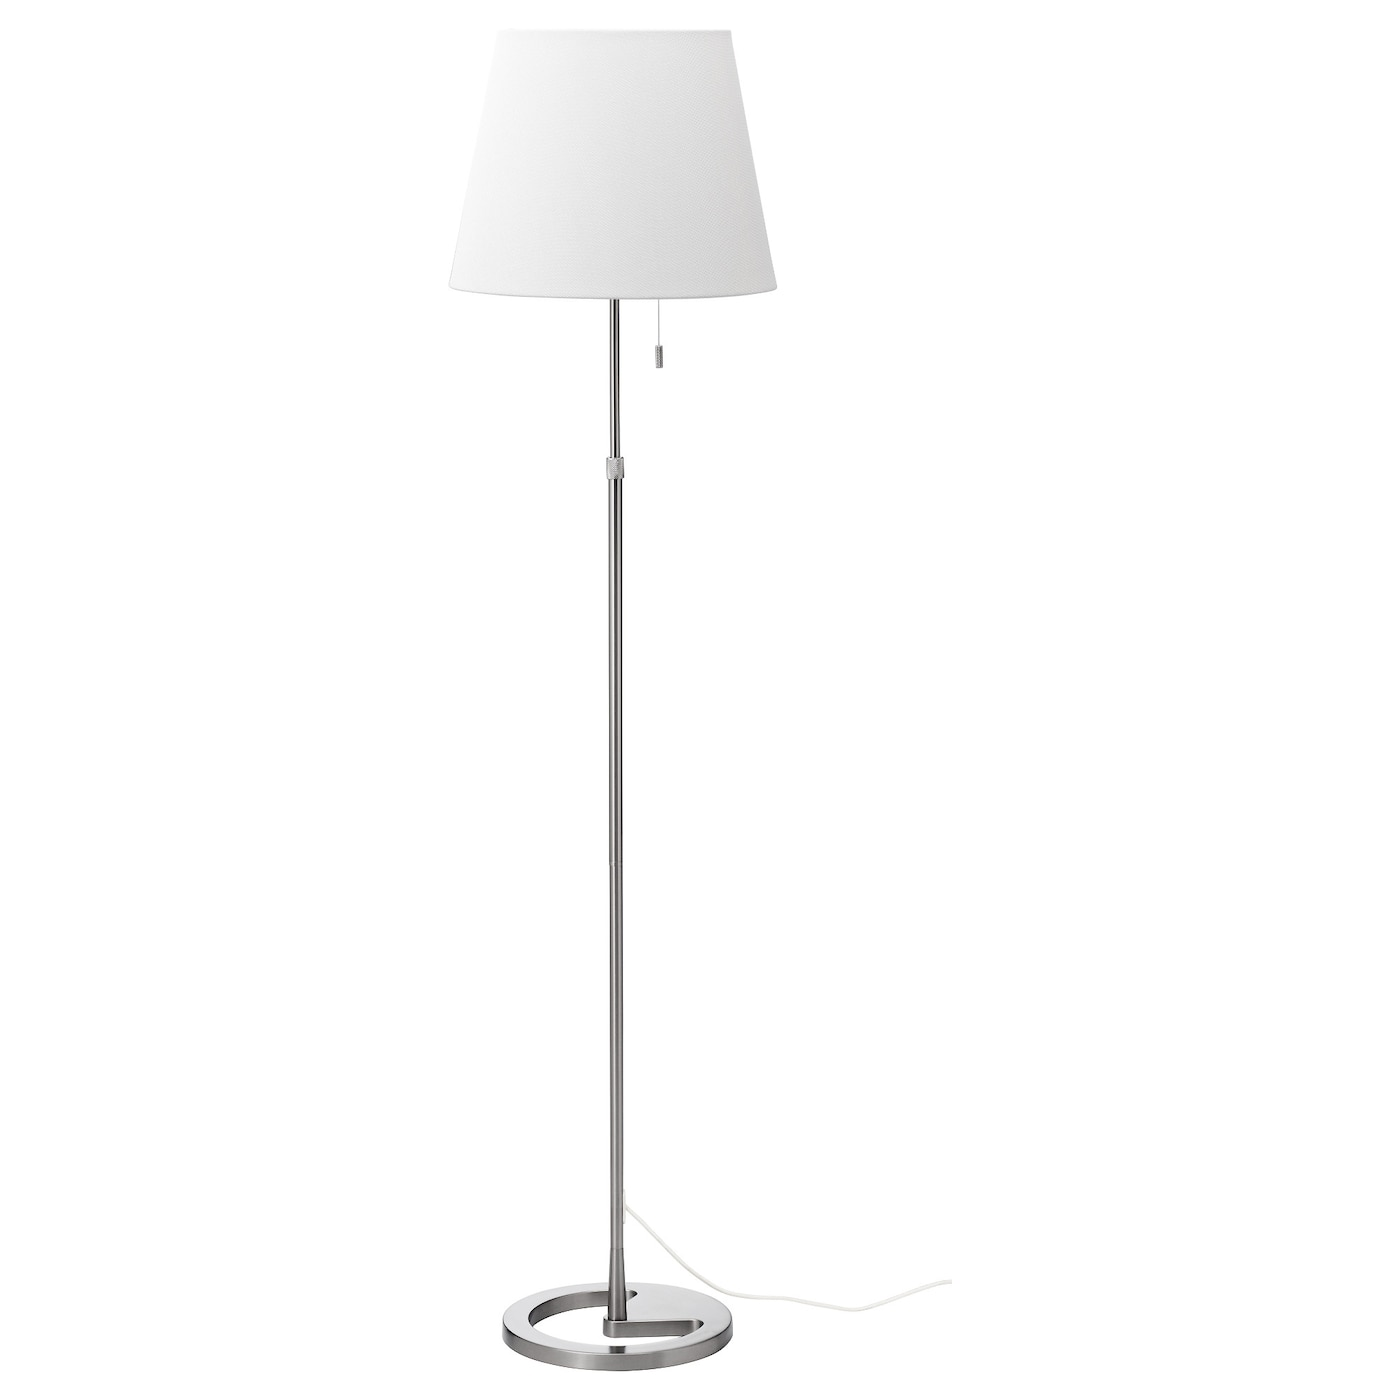 Ikea Alang Floor Lamp White ~ IKEA NYFORS floor lamp The height is adjustable to suit your lighting